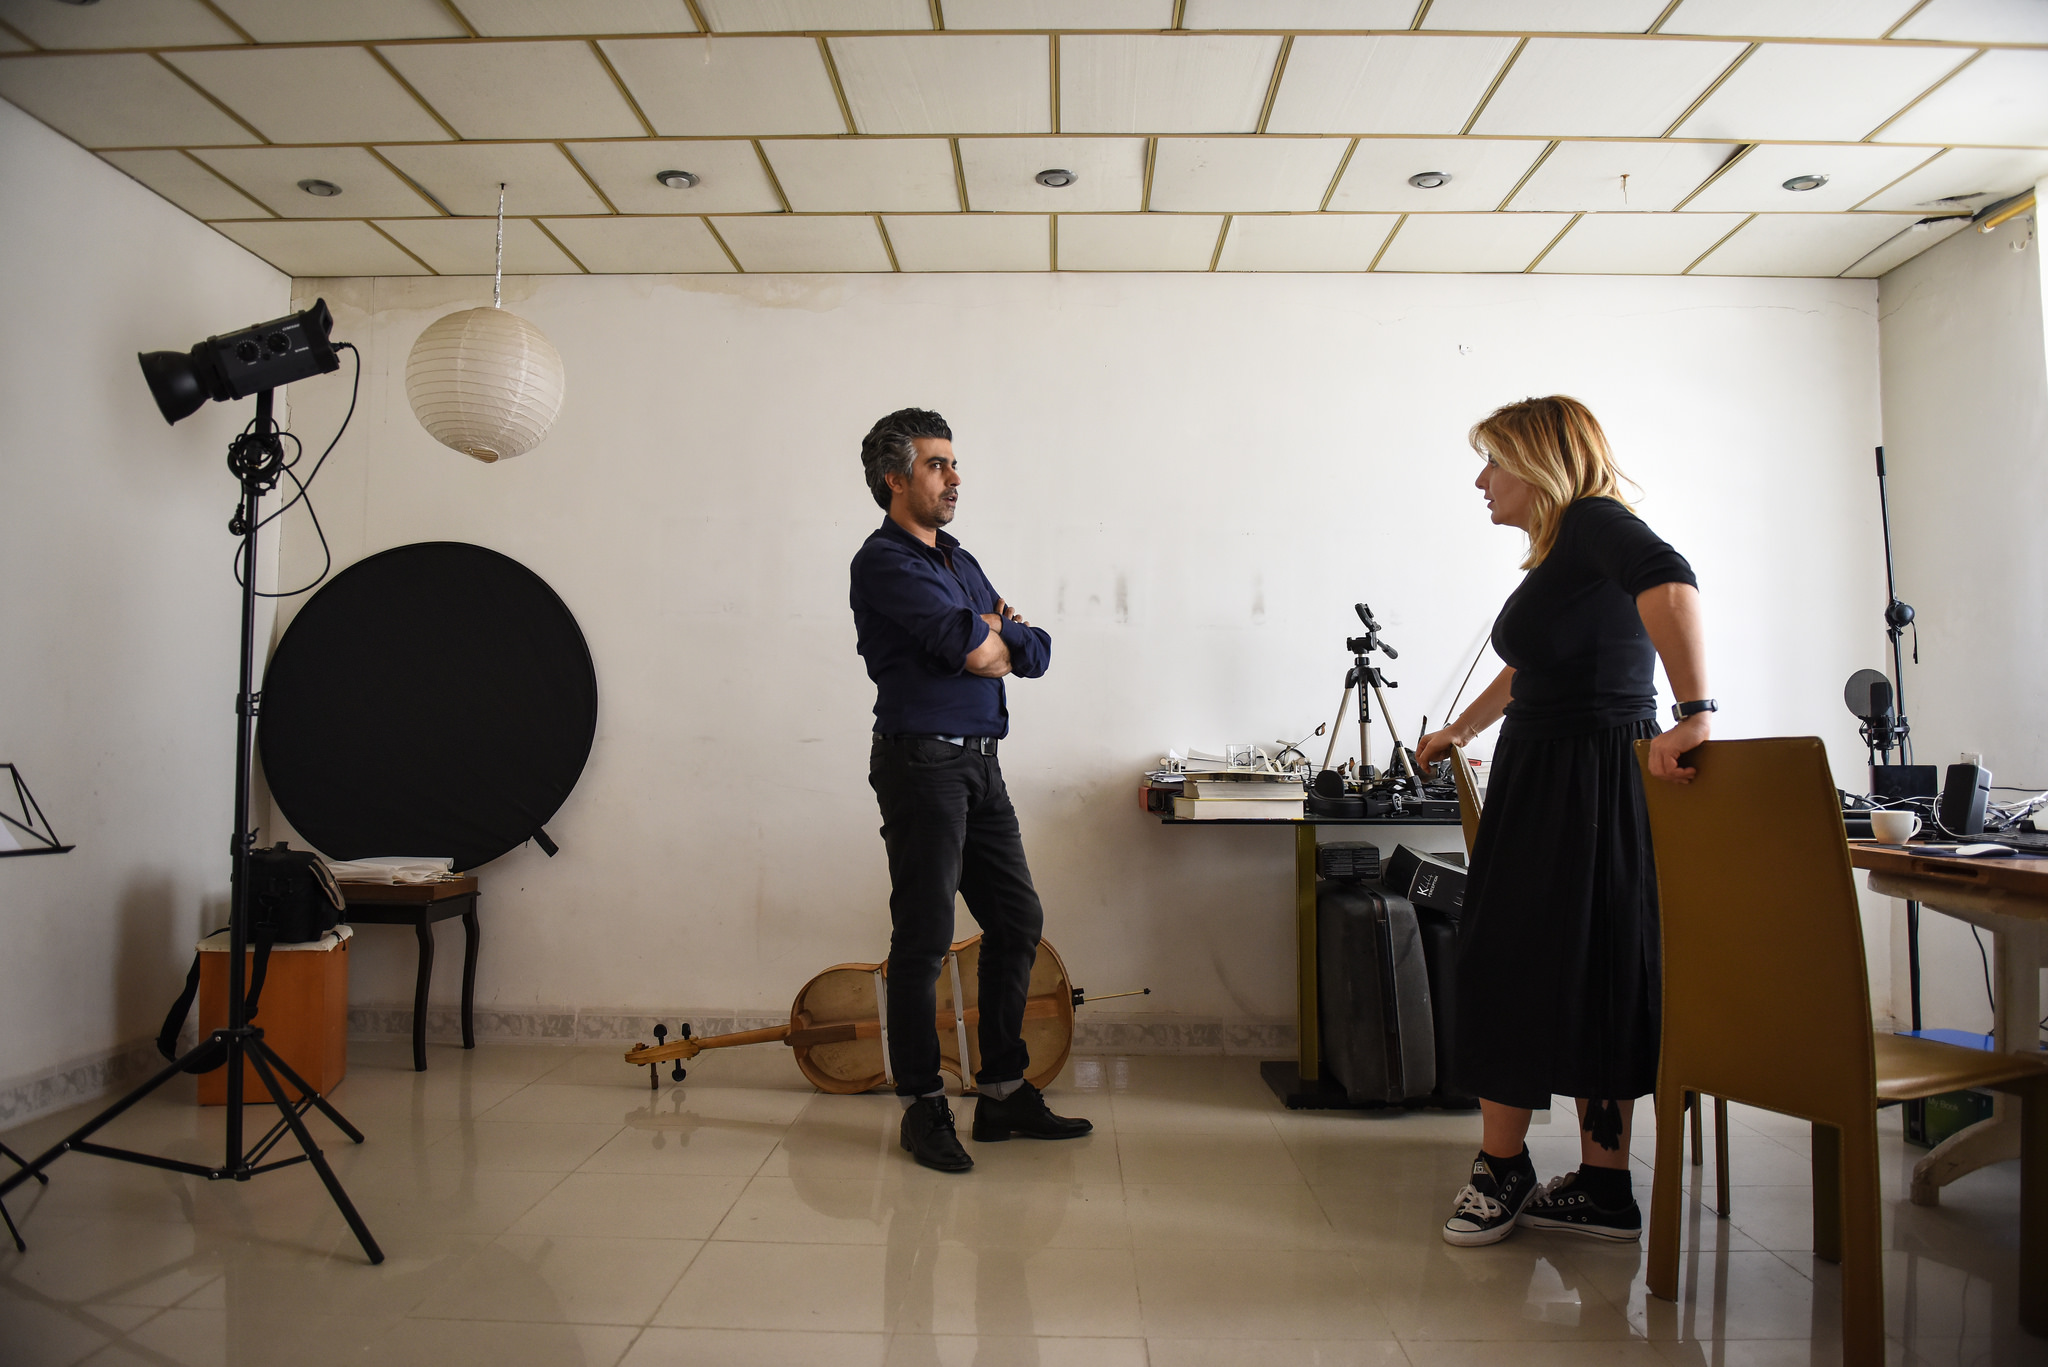 Sherko Abbas and Tamara Chalabi in the artist's studio in Sulaymaniya. Photo: Ruya Foundation